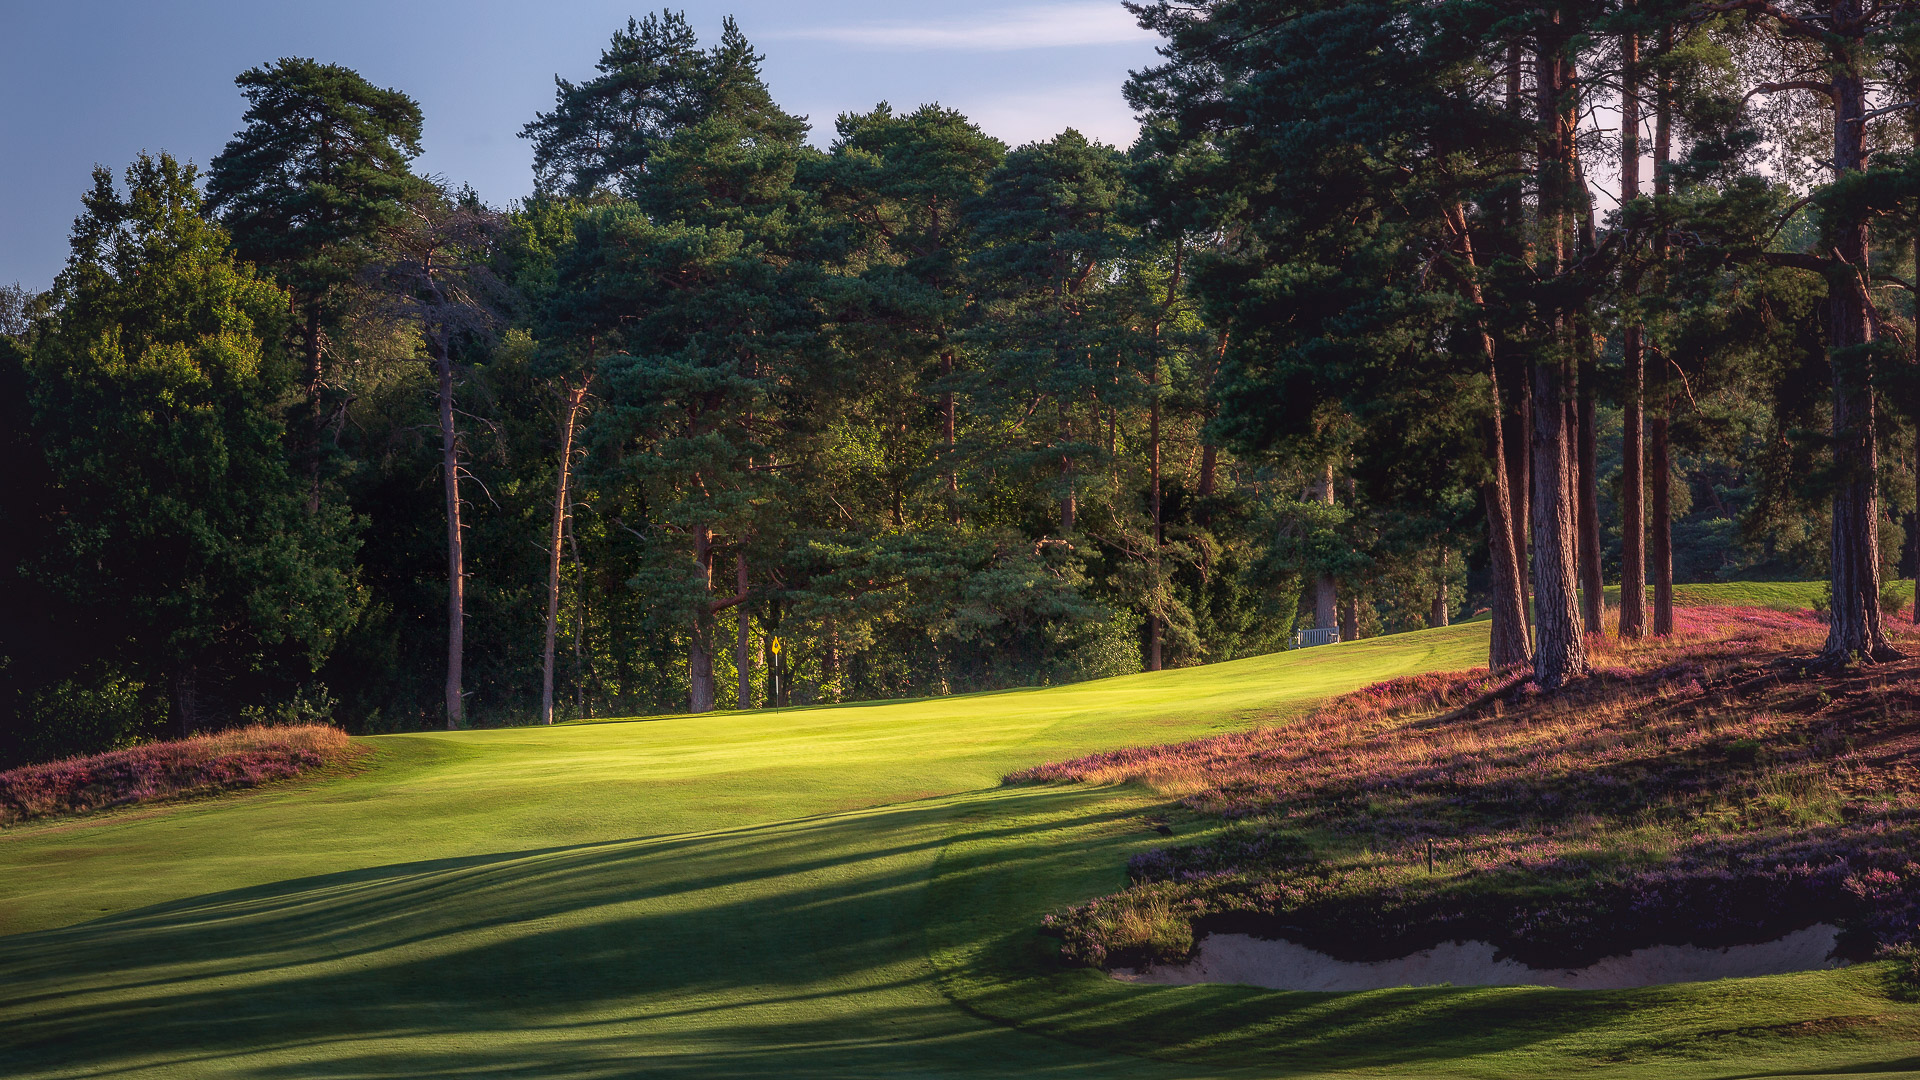 18th-Hole-St-Georges-Hill-Golf-Club-2467-Edit